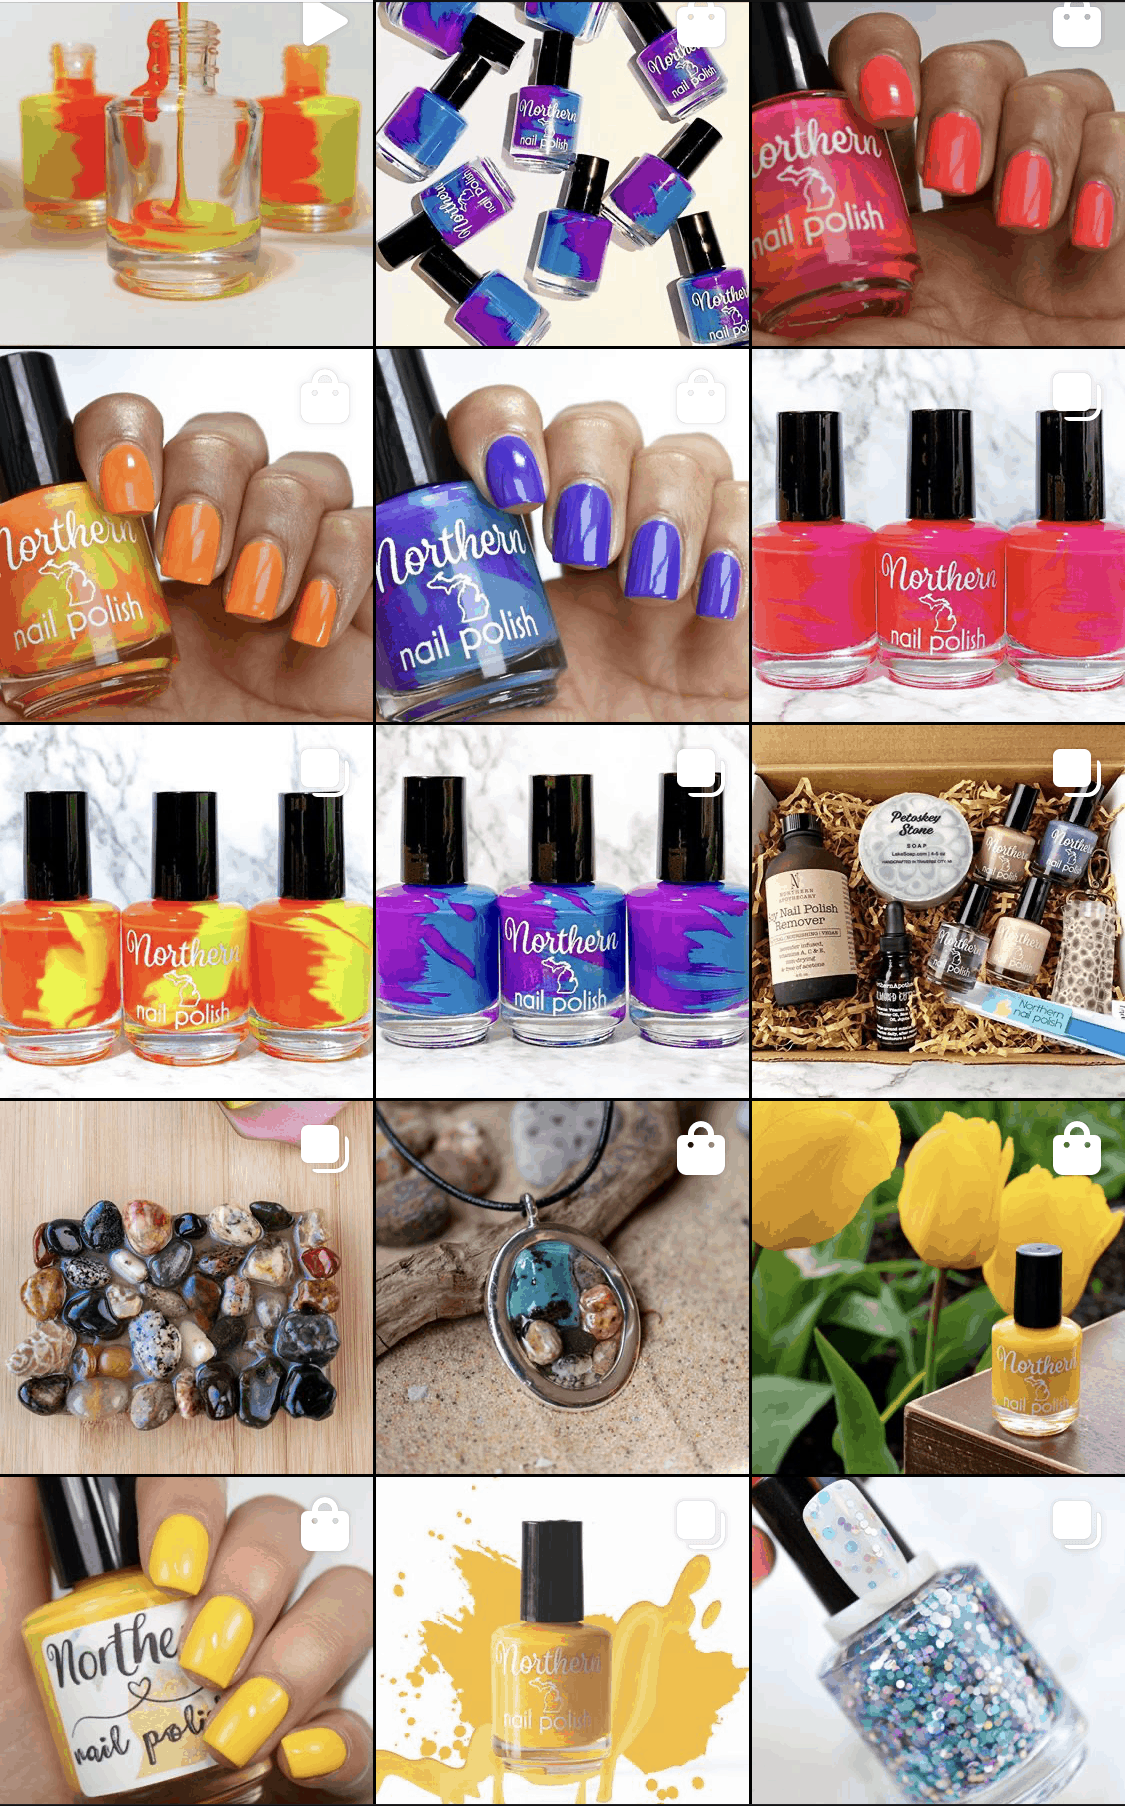 northern nail polish instagram feed before